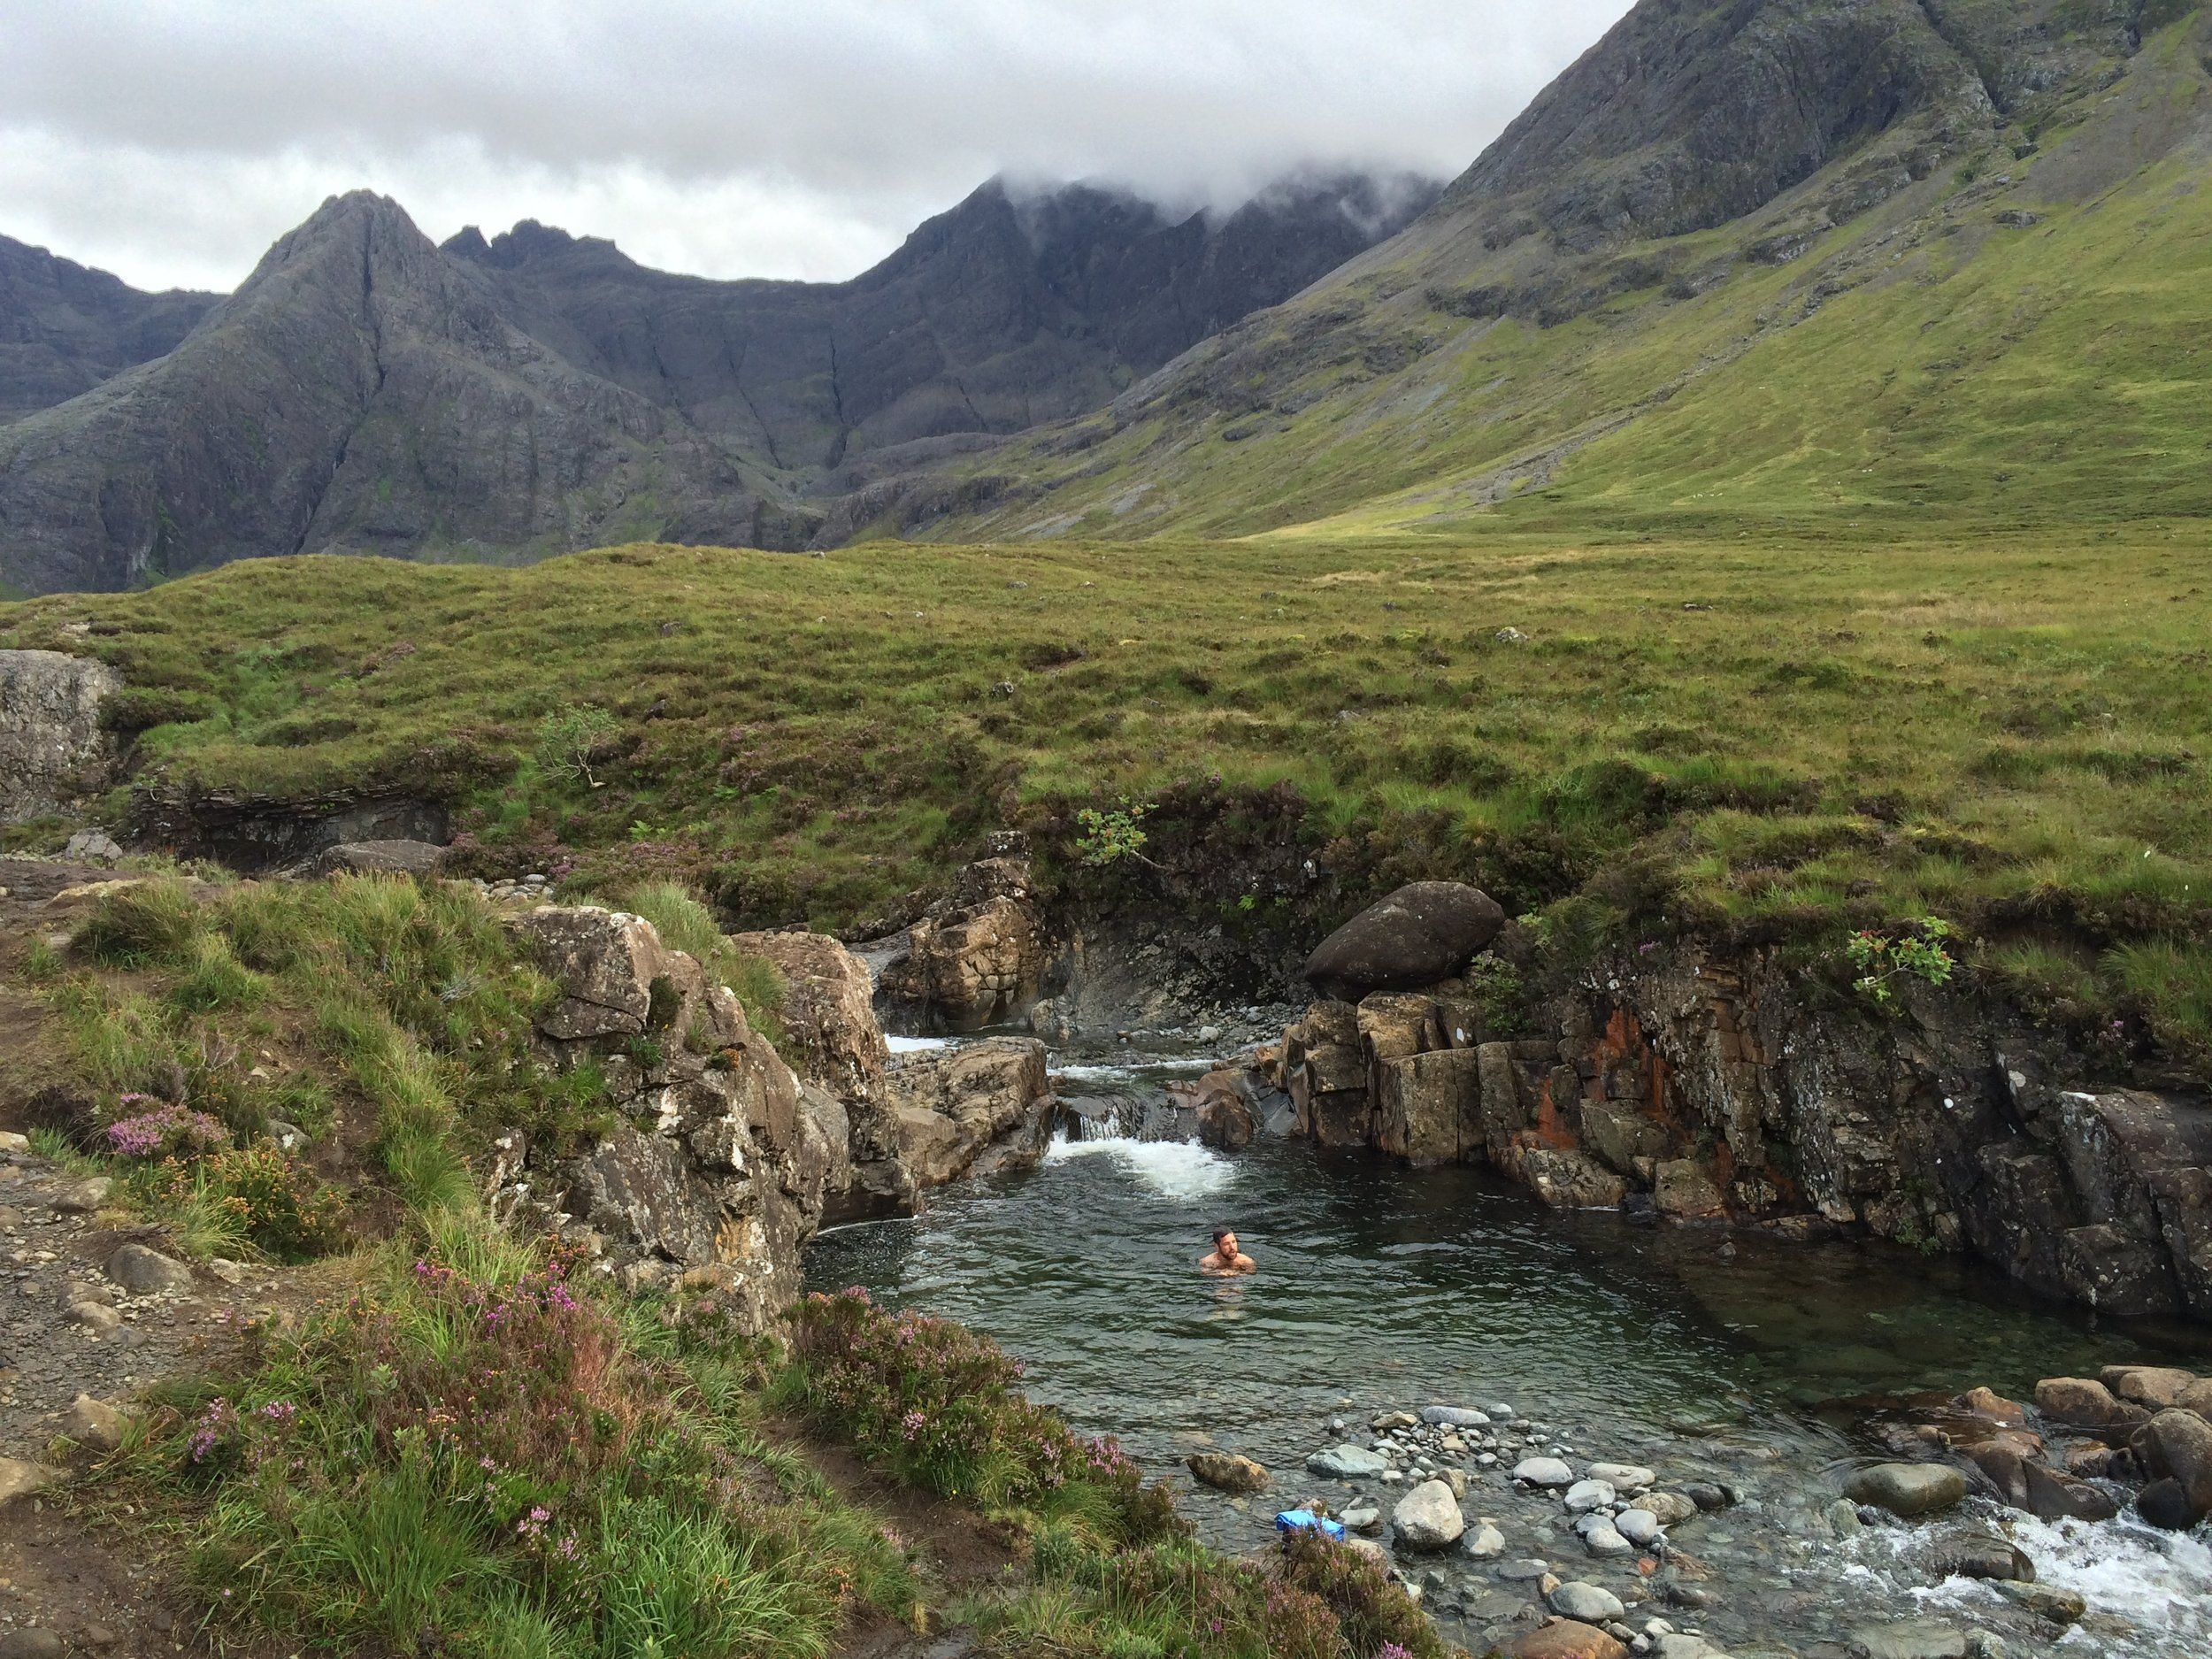 Taking a dip at the Fairy Pools, well the braver of us two did!